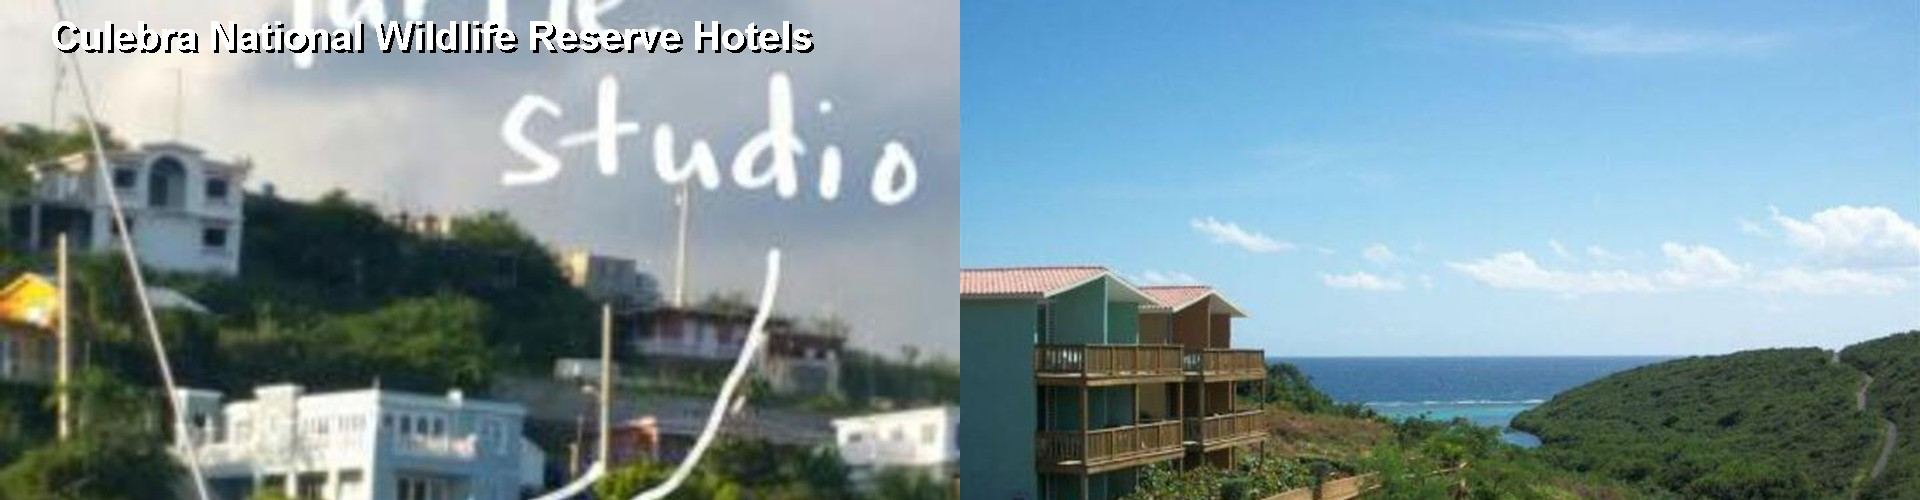 5 Best Hotels near Culebra National Wildlife Reserve